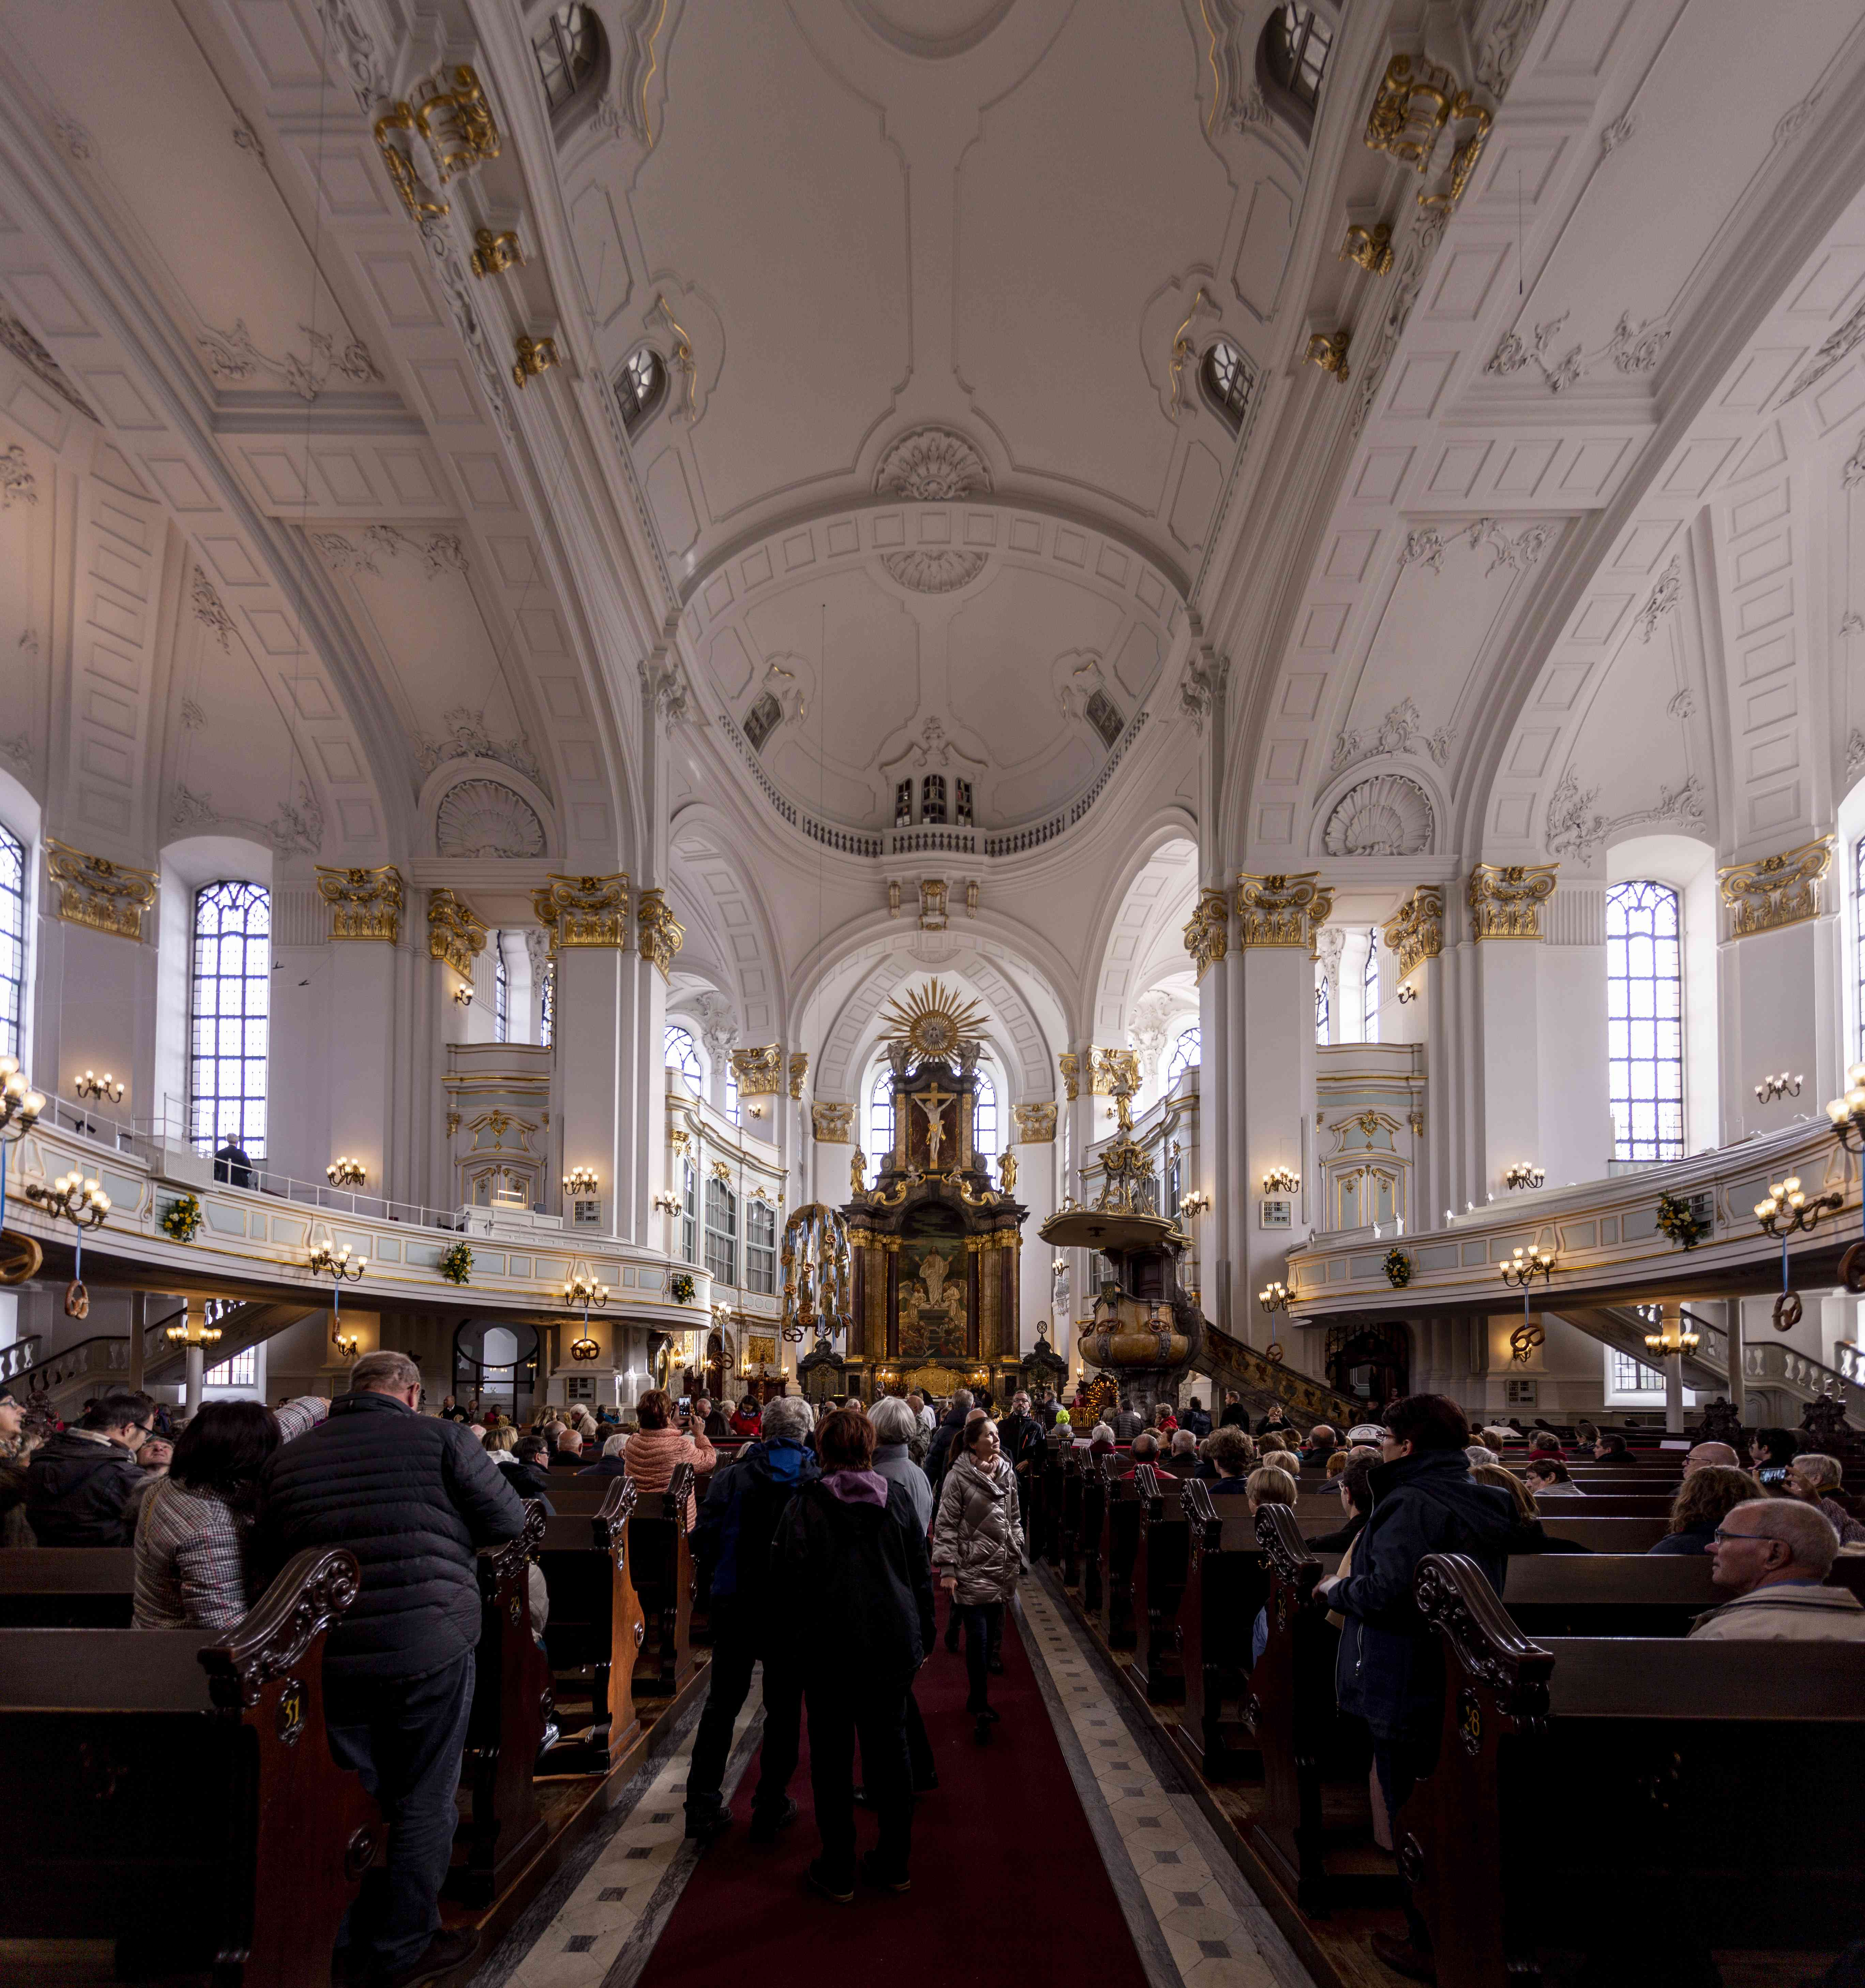 A large crowd inside the Church of St Michaelis